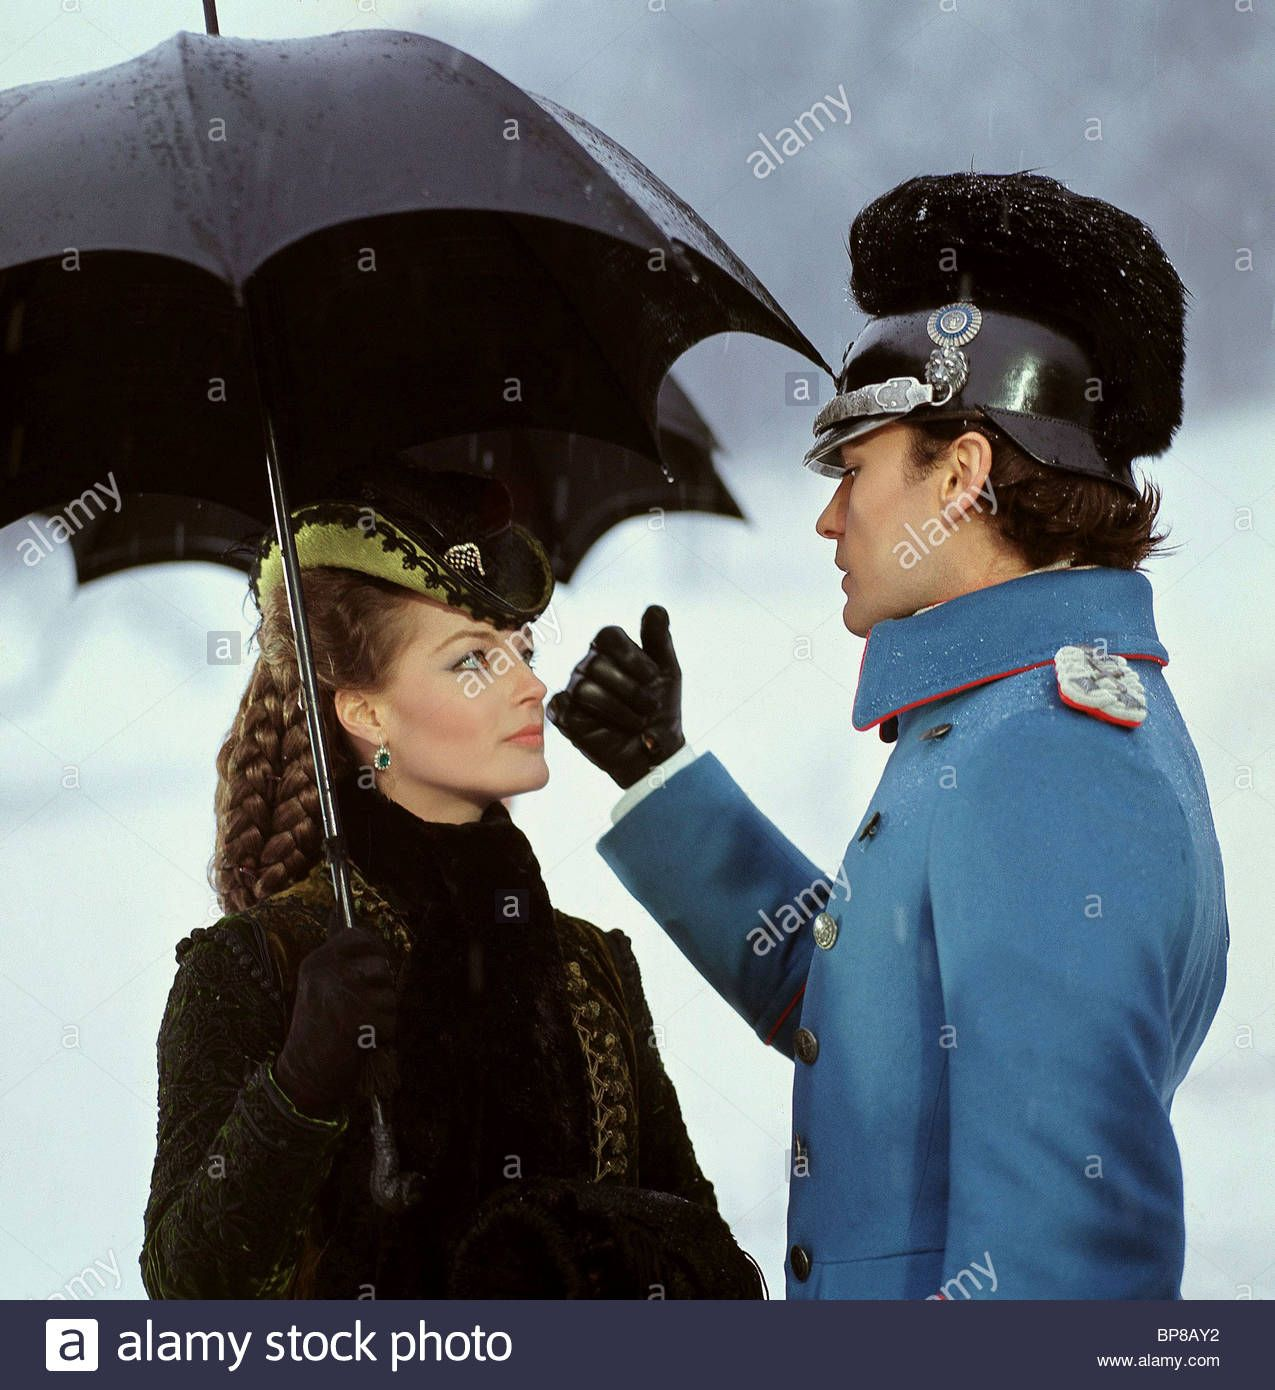 Download This Stock Image Romy Schneider Helmut Berger Ludwig